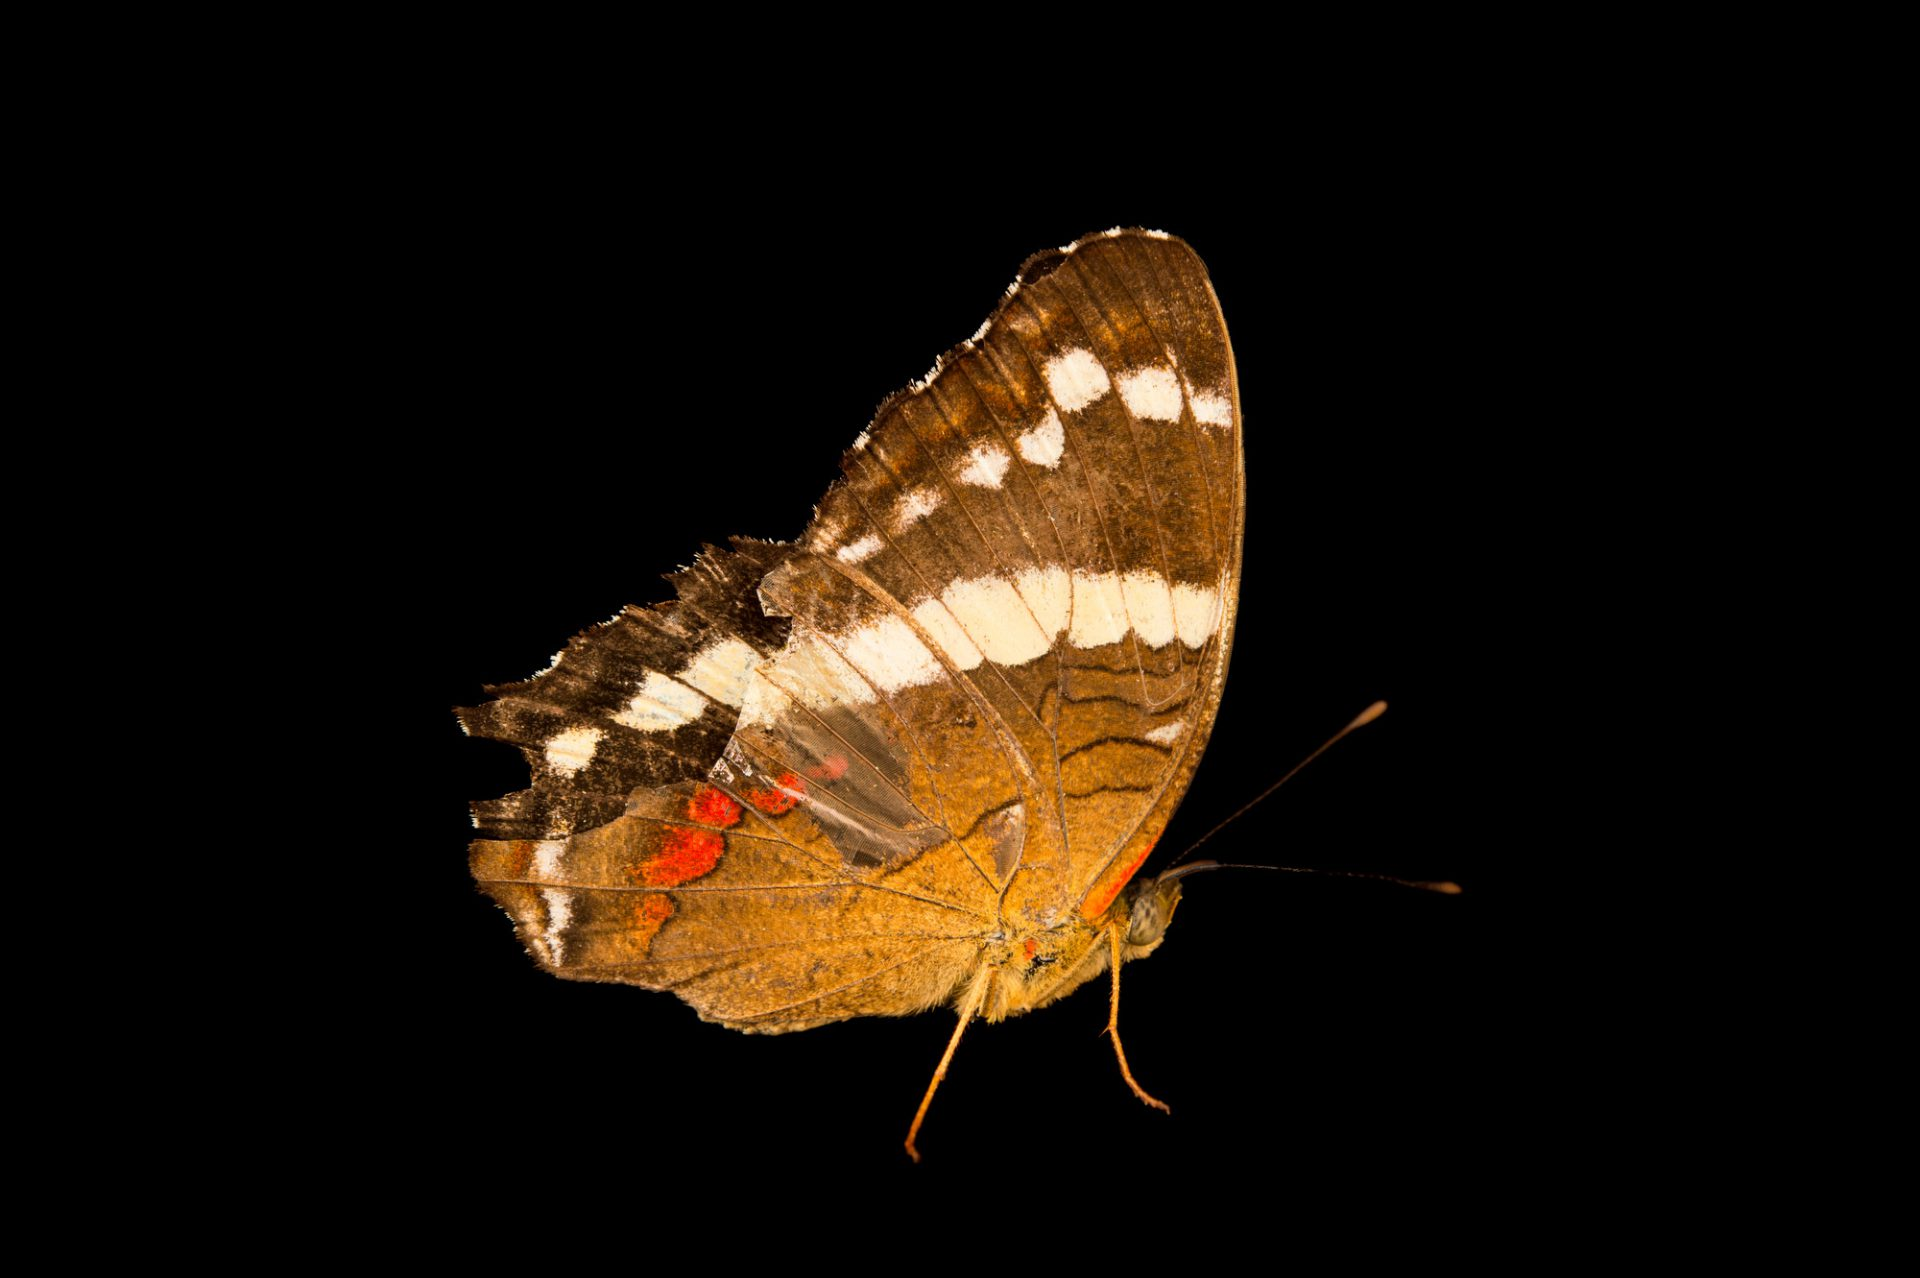 Photo: Banded peacock or fatima (Anartia fatima) in Gamboa, Panama.